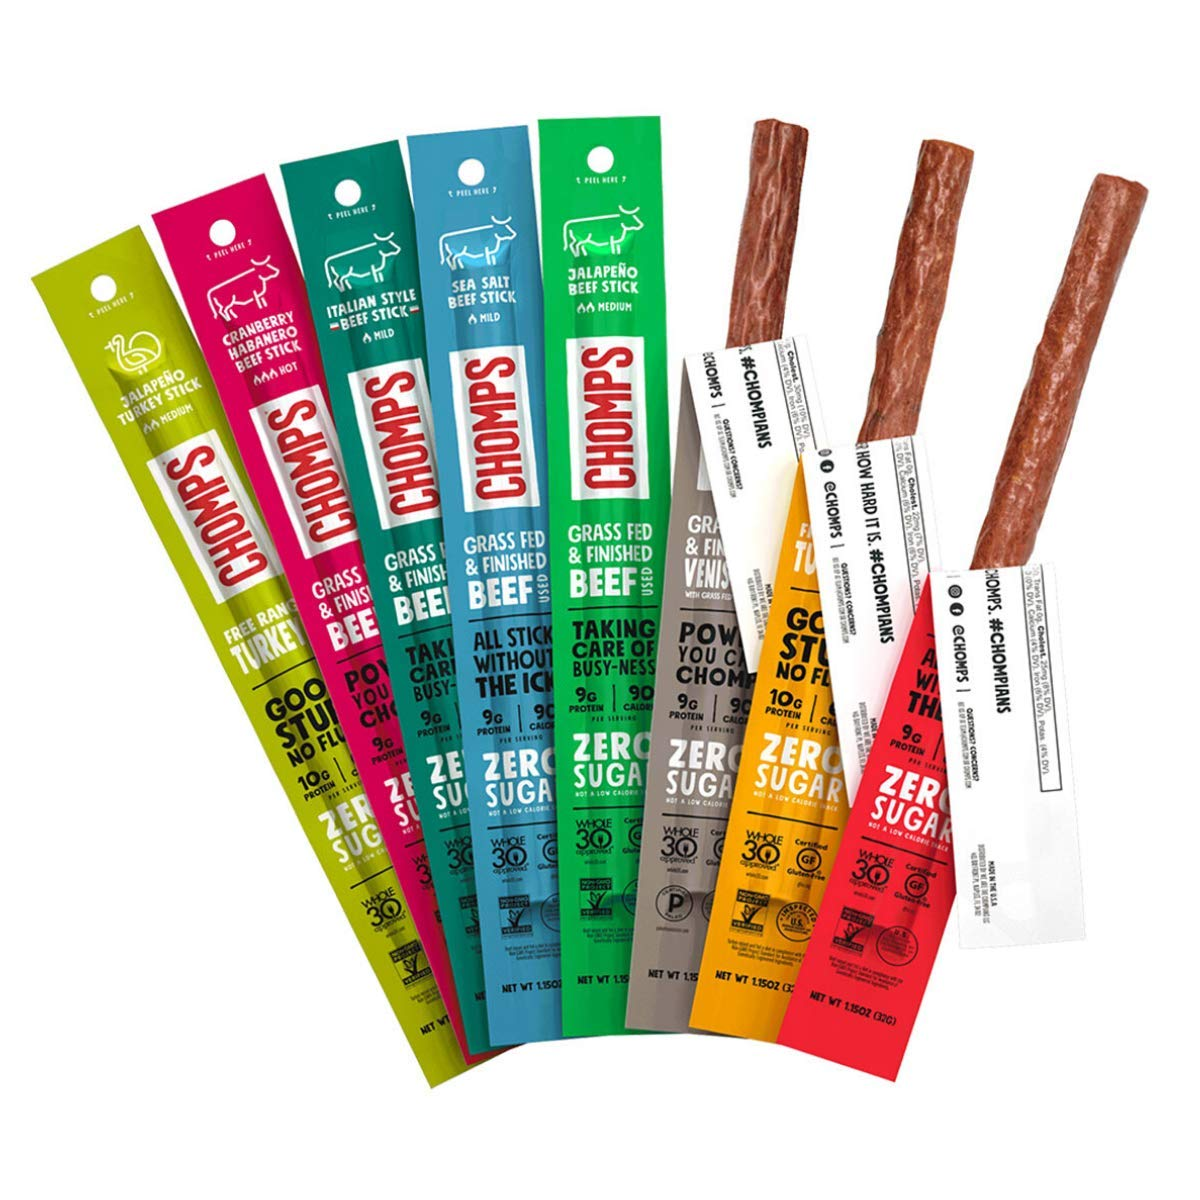 CHOMPS Grass Fed & Free Range Meat Sticks, Whole30, Keto, Paleo, Gluten Free, Sugar Free, Nitrate Free, Low Carb, High Protein, Variety Pack of 8 Sticks